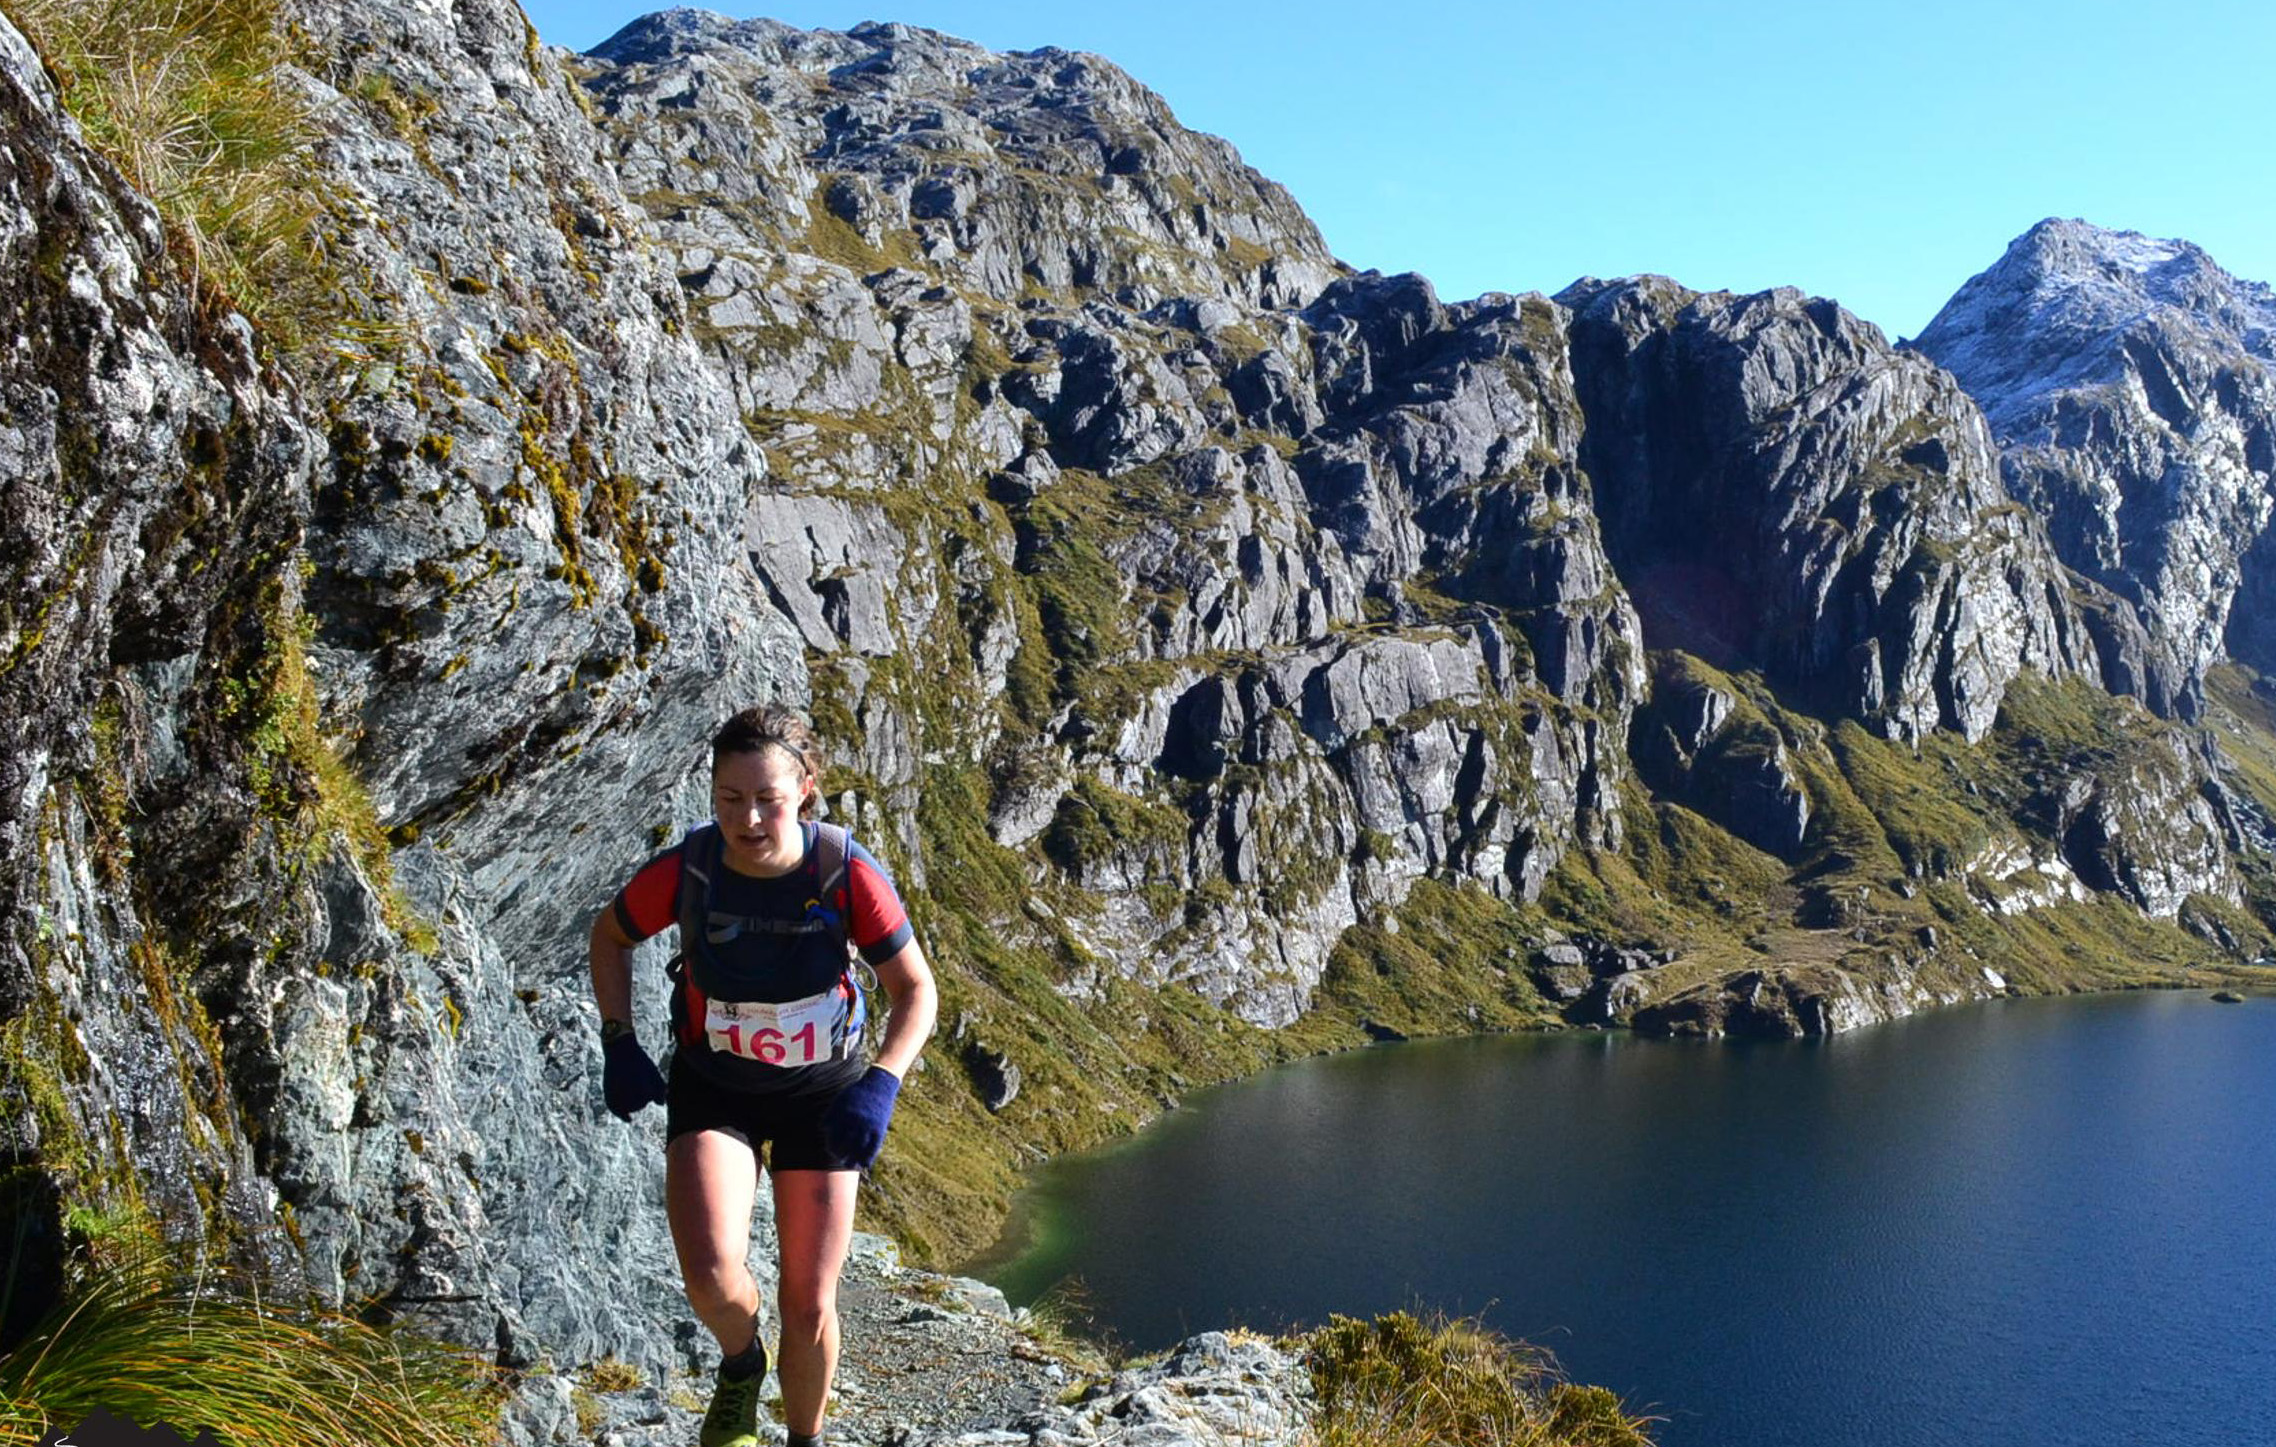 Torpedo7 athlete Fiona Dowling knows the benefits of running with a pack as she tackles the Routeburn Classic